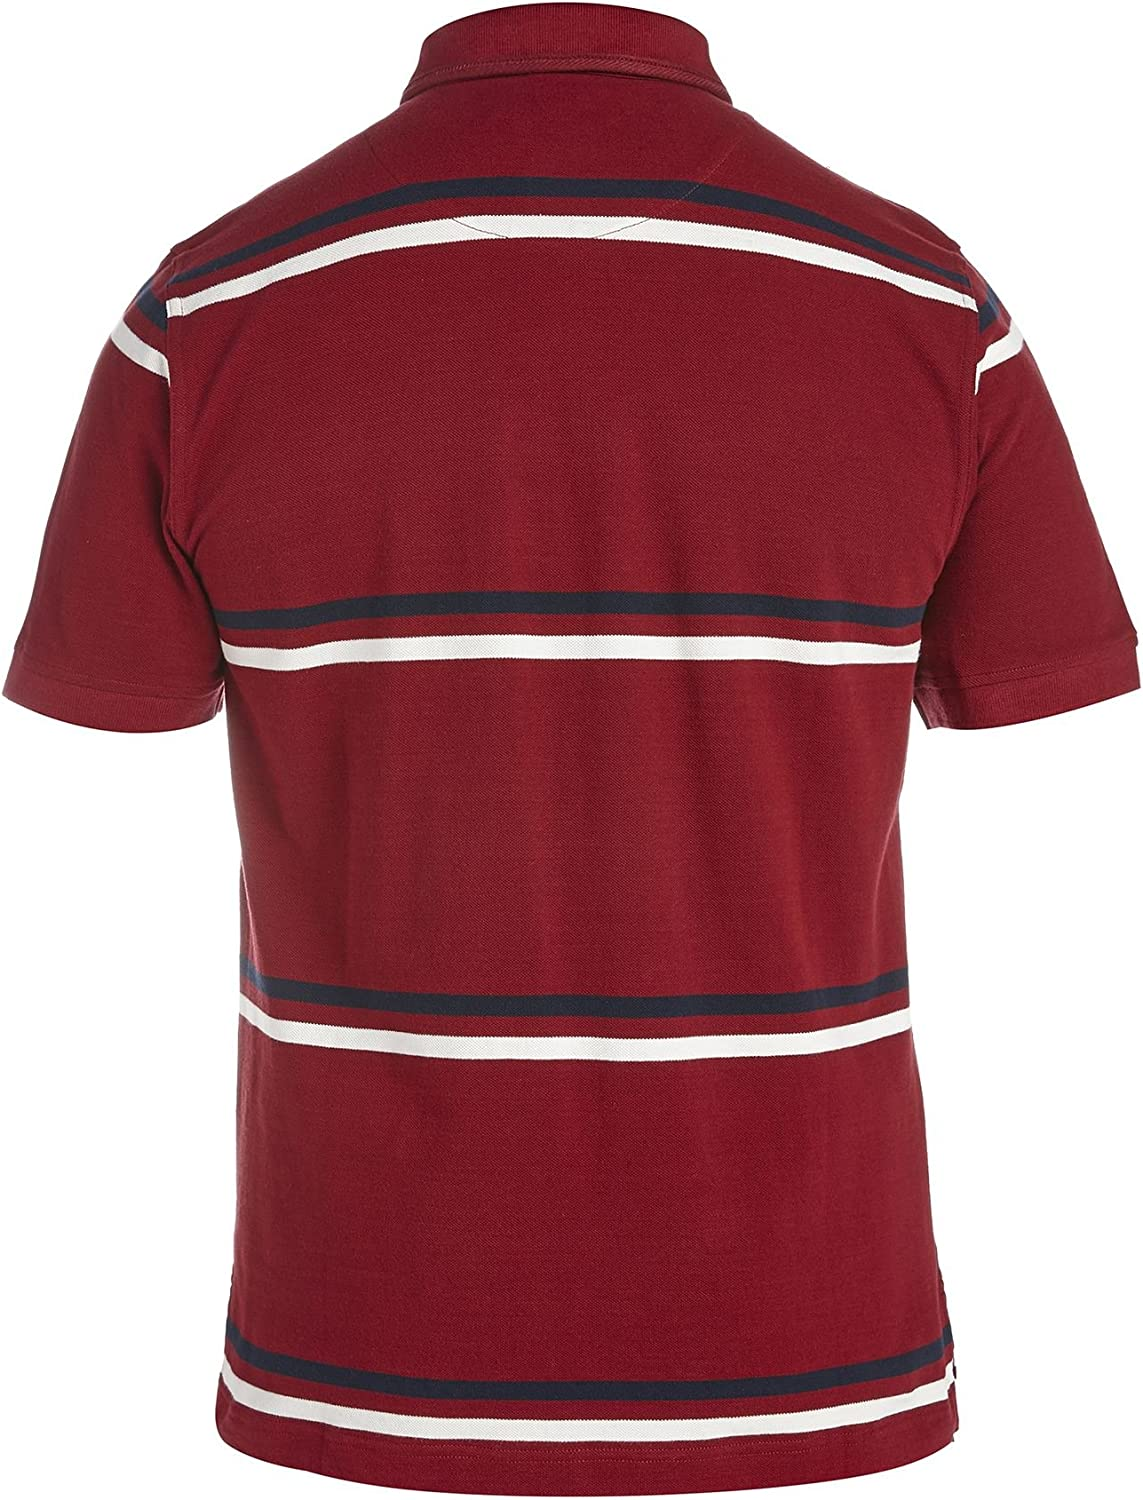 Canterbury Mens England 1871 Striped Cotton Rugby Polo Shirt ...